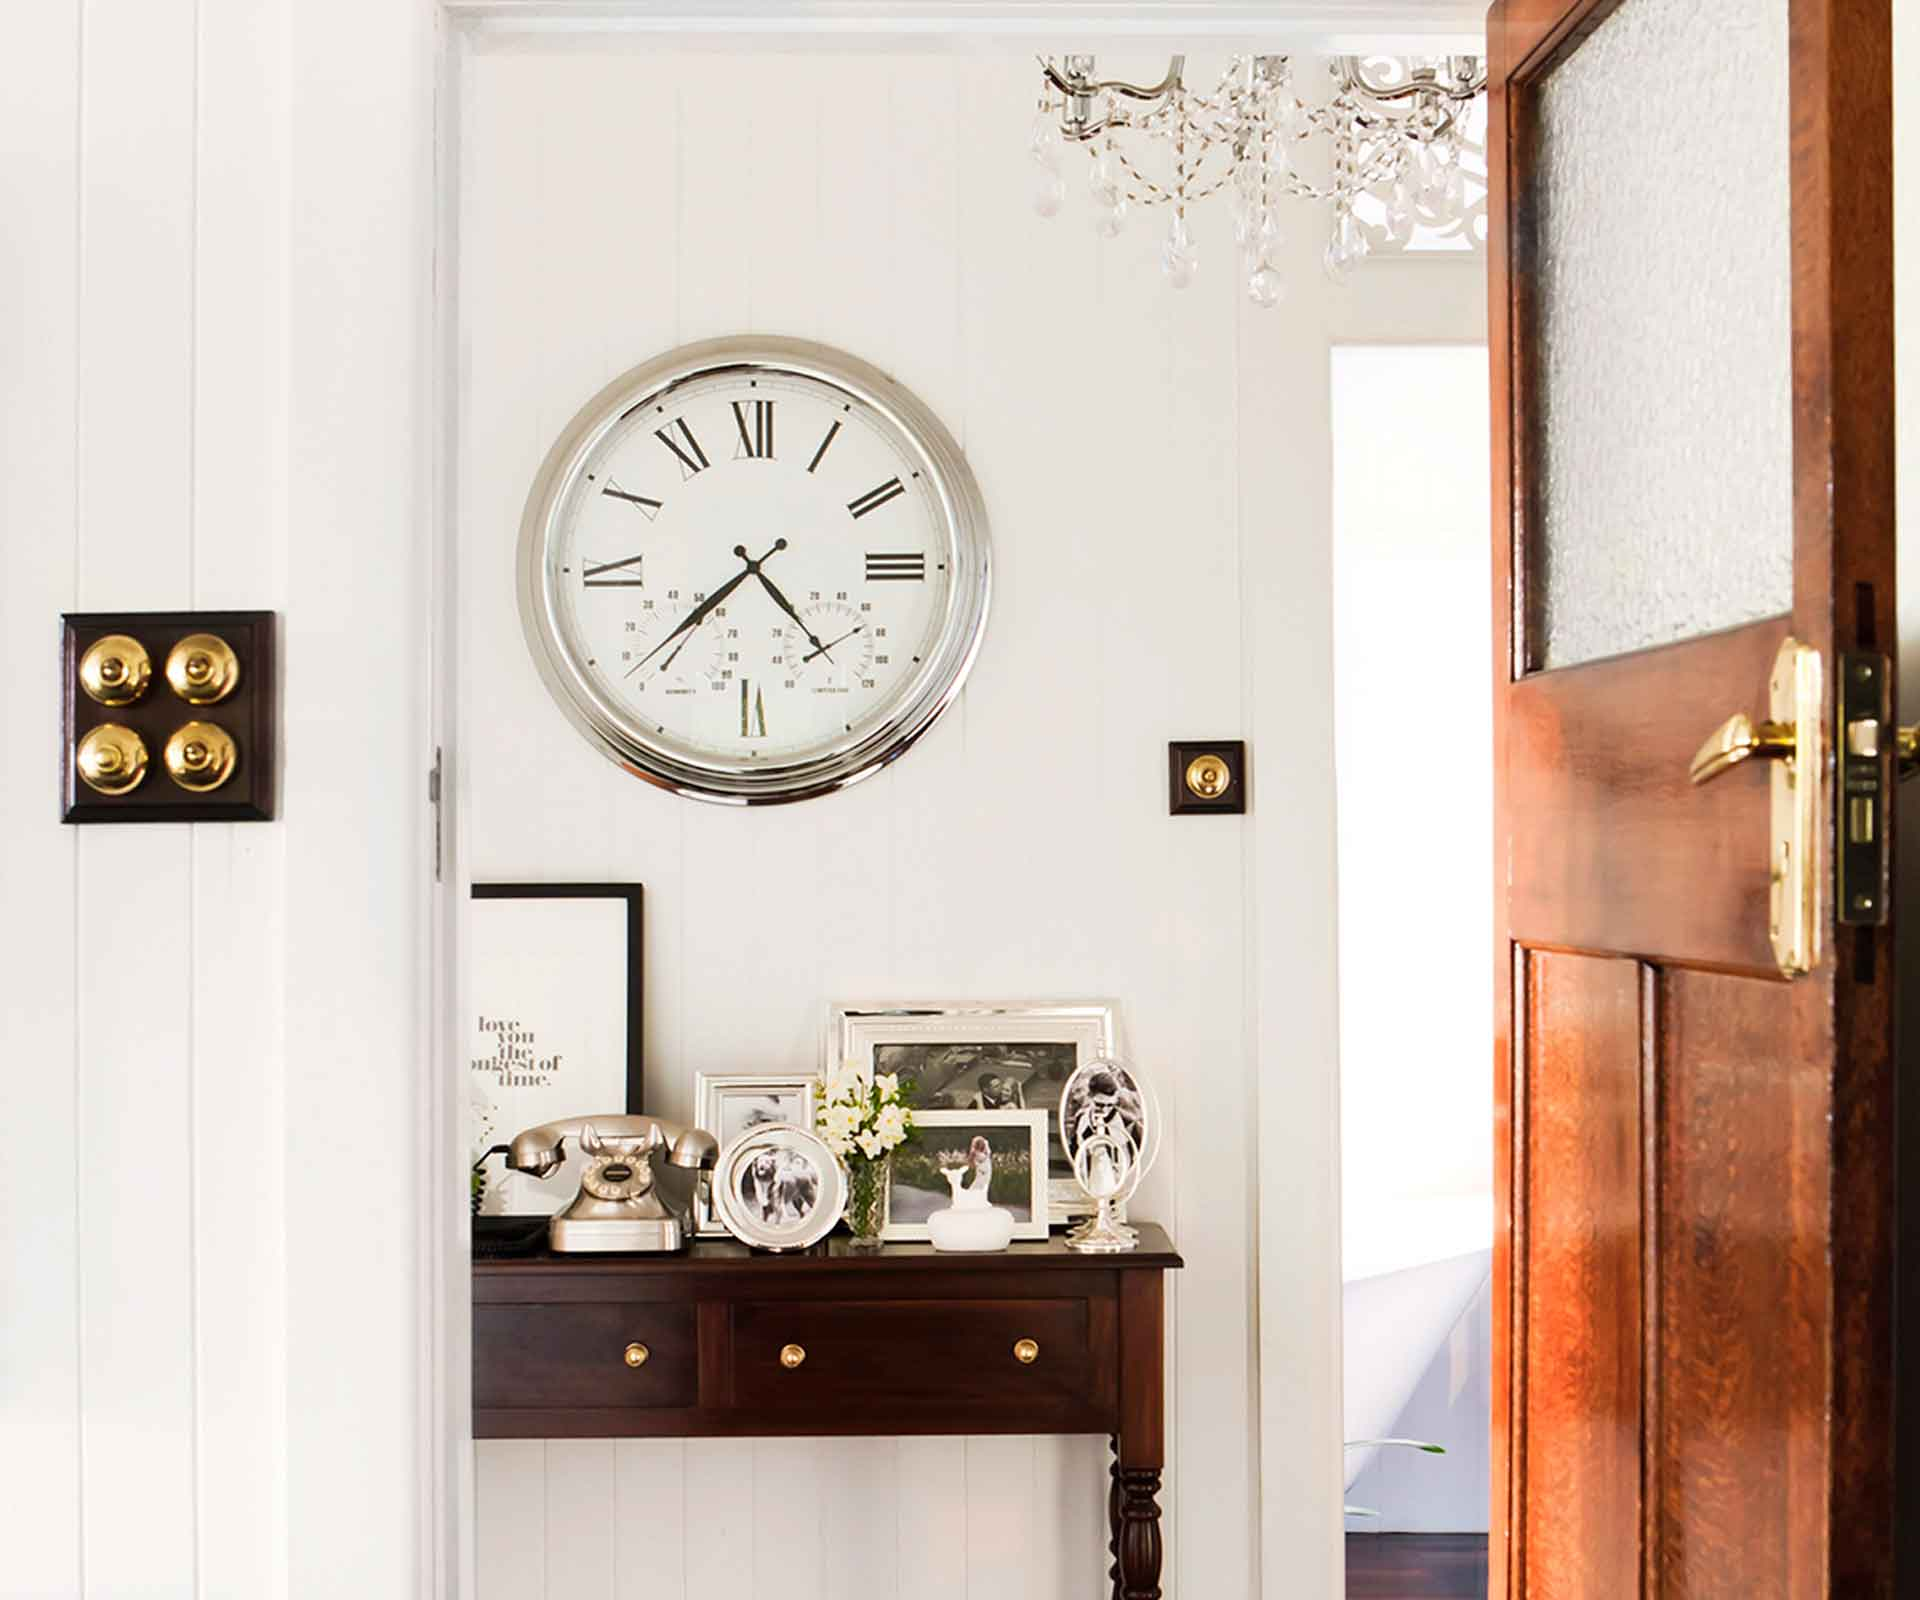 13 wall clocks to suit any style of home | Homes To Love